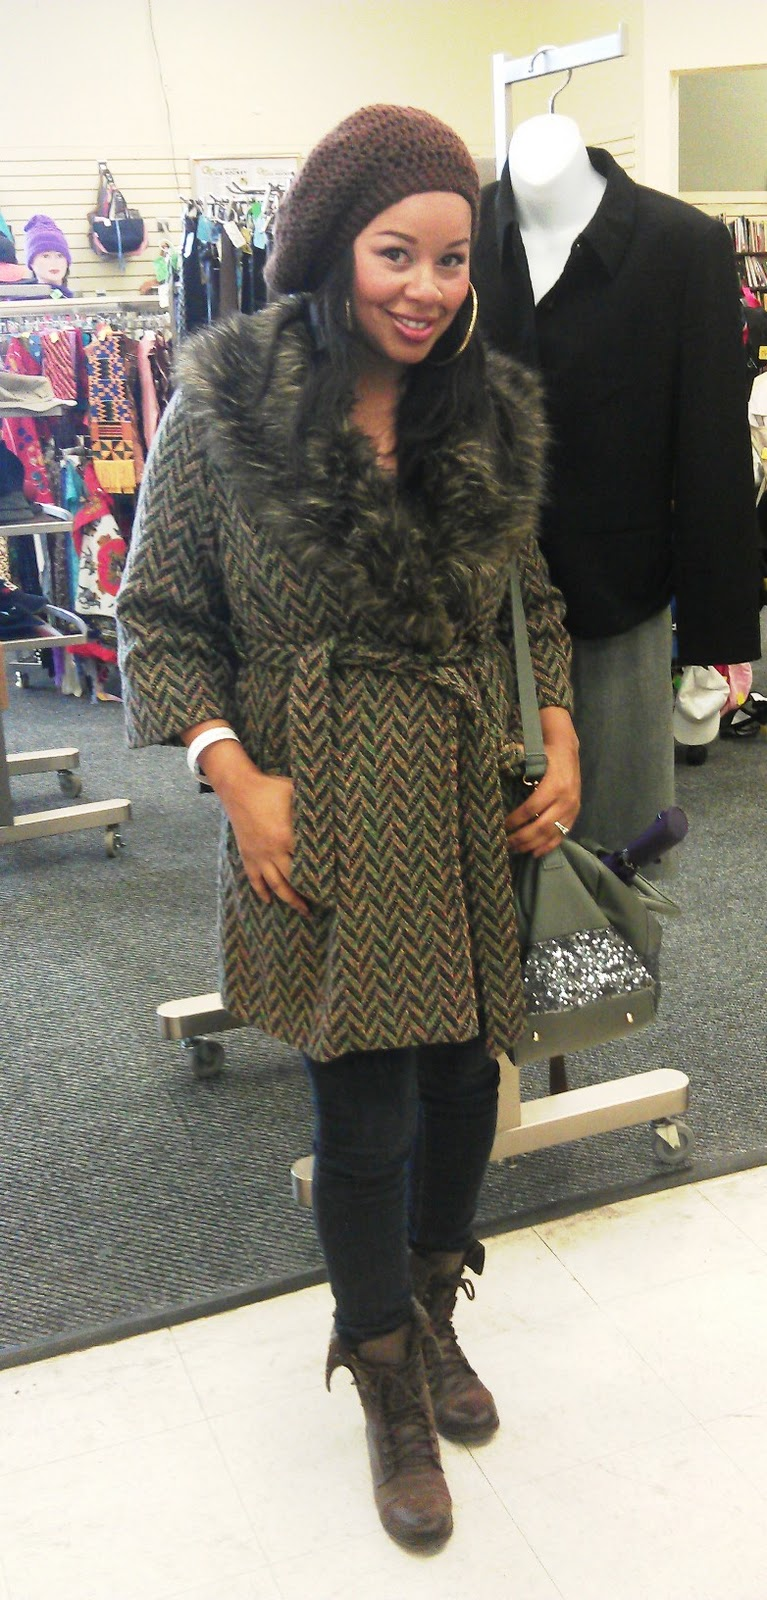 16eb5dd2d3f You guys know about my new found love for thrifting! I participated by  going to a swap at B   R Thrift store hosted by Kerrie of Virtuous Styls  and Keren of ...